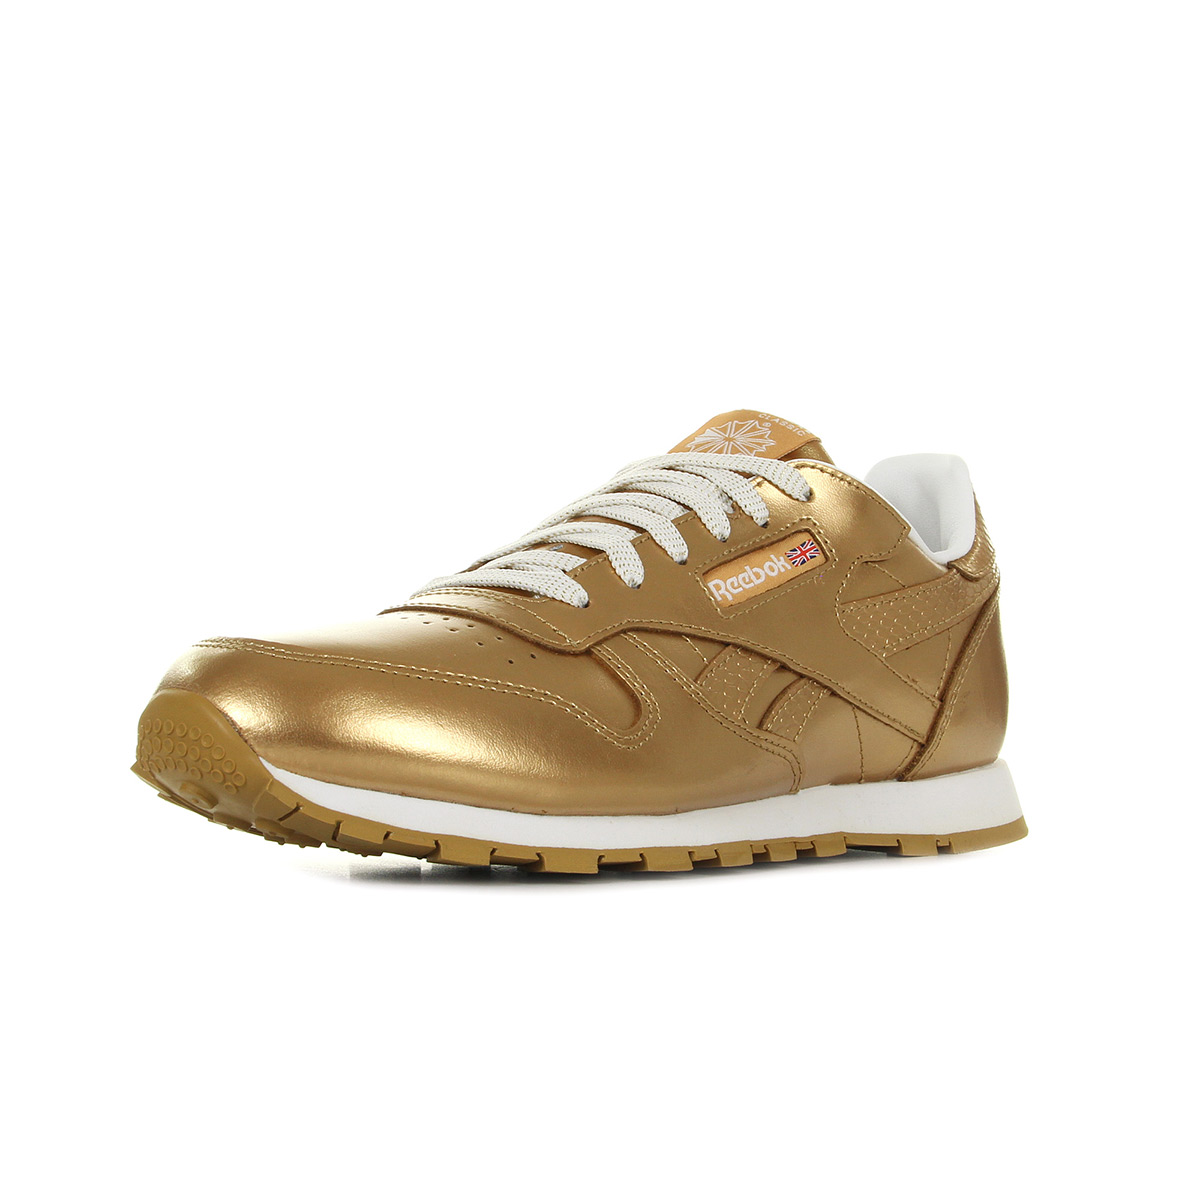 b3a18733a1f3b Reebok Classic Leather Metallic Gold BS8944